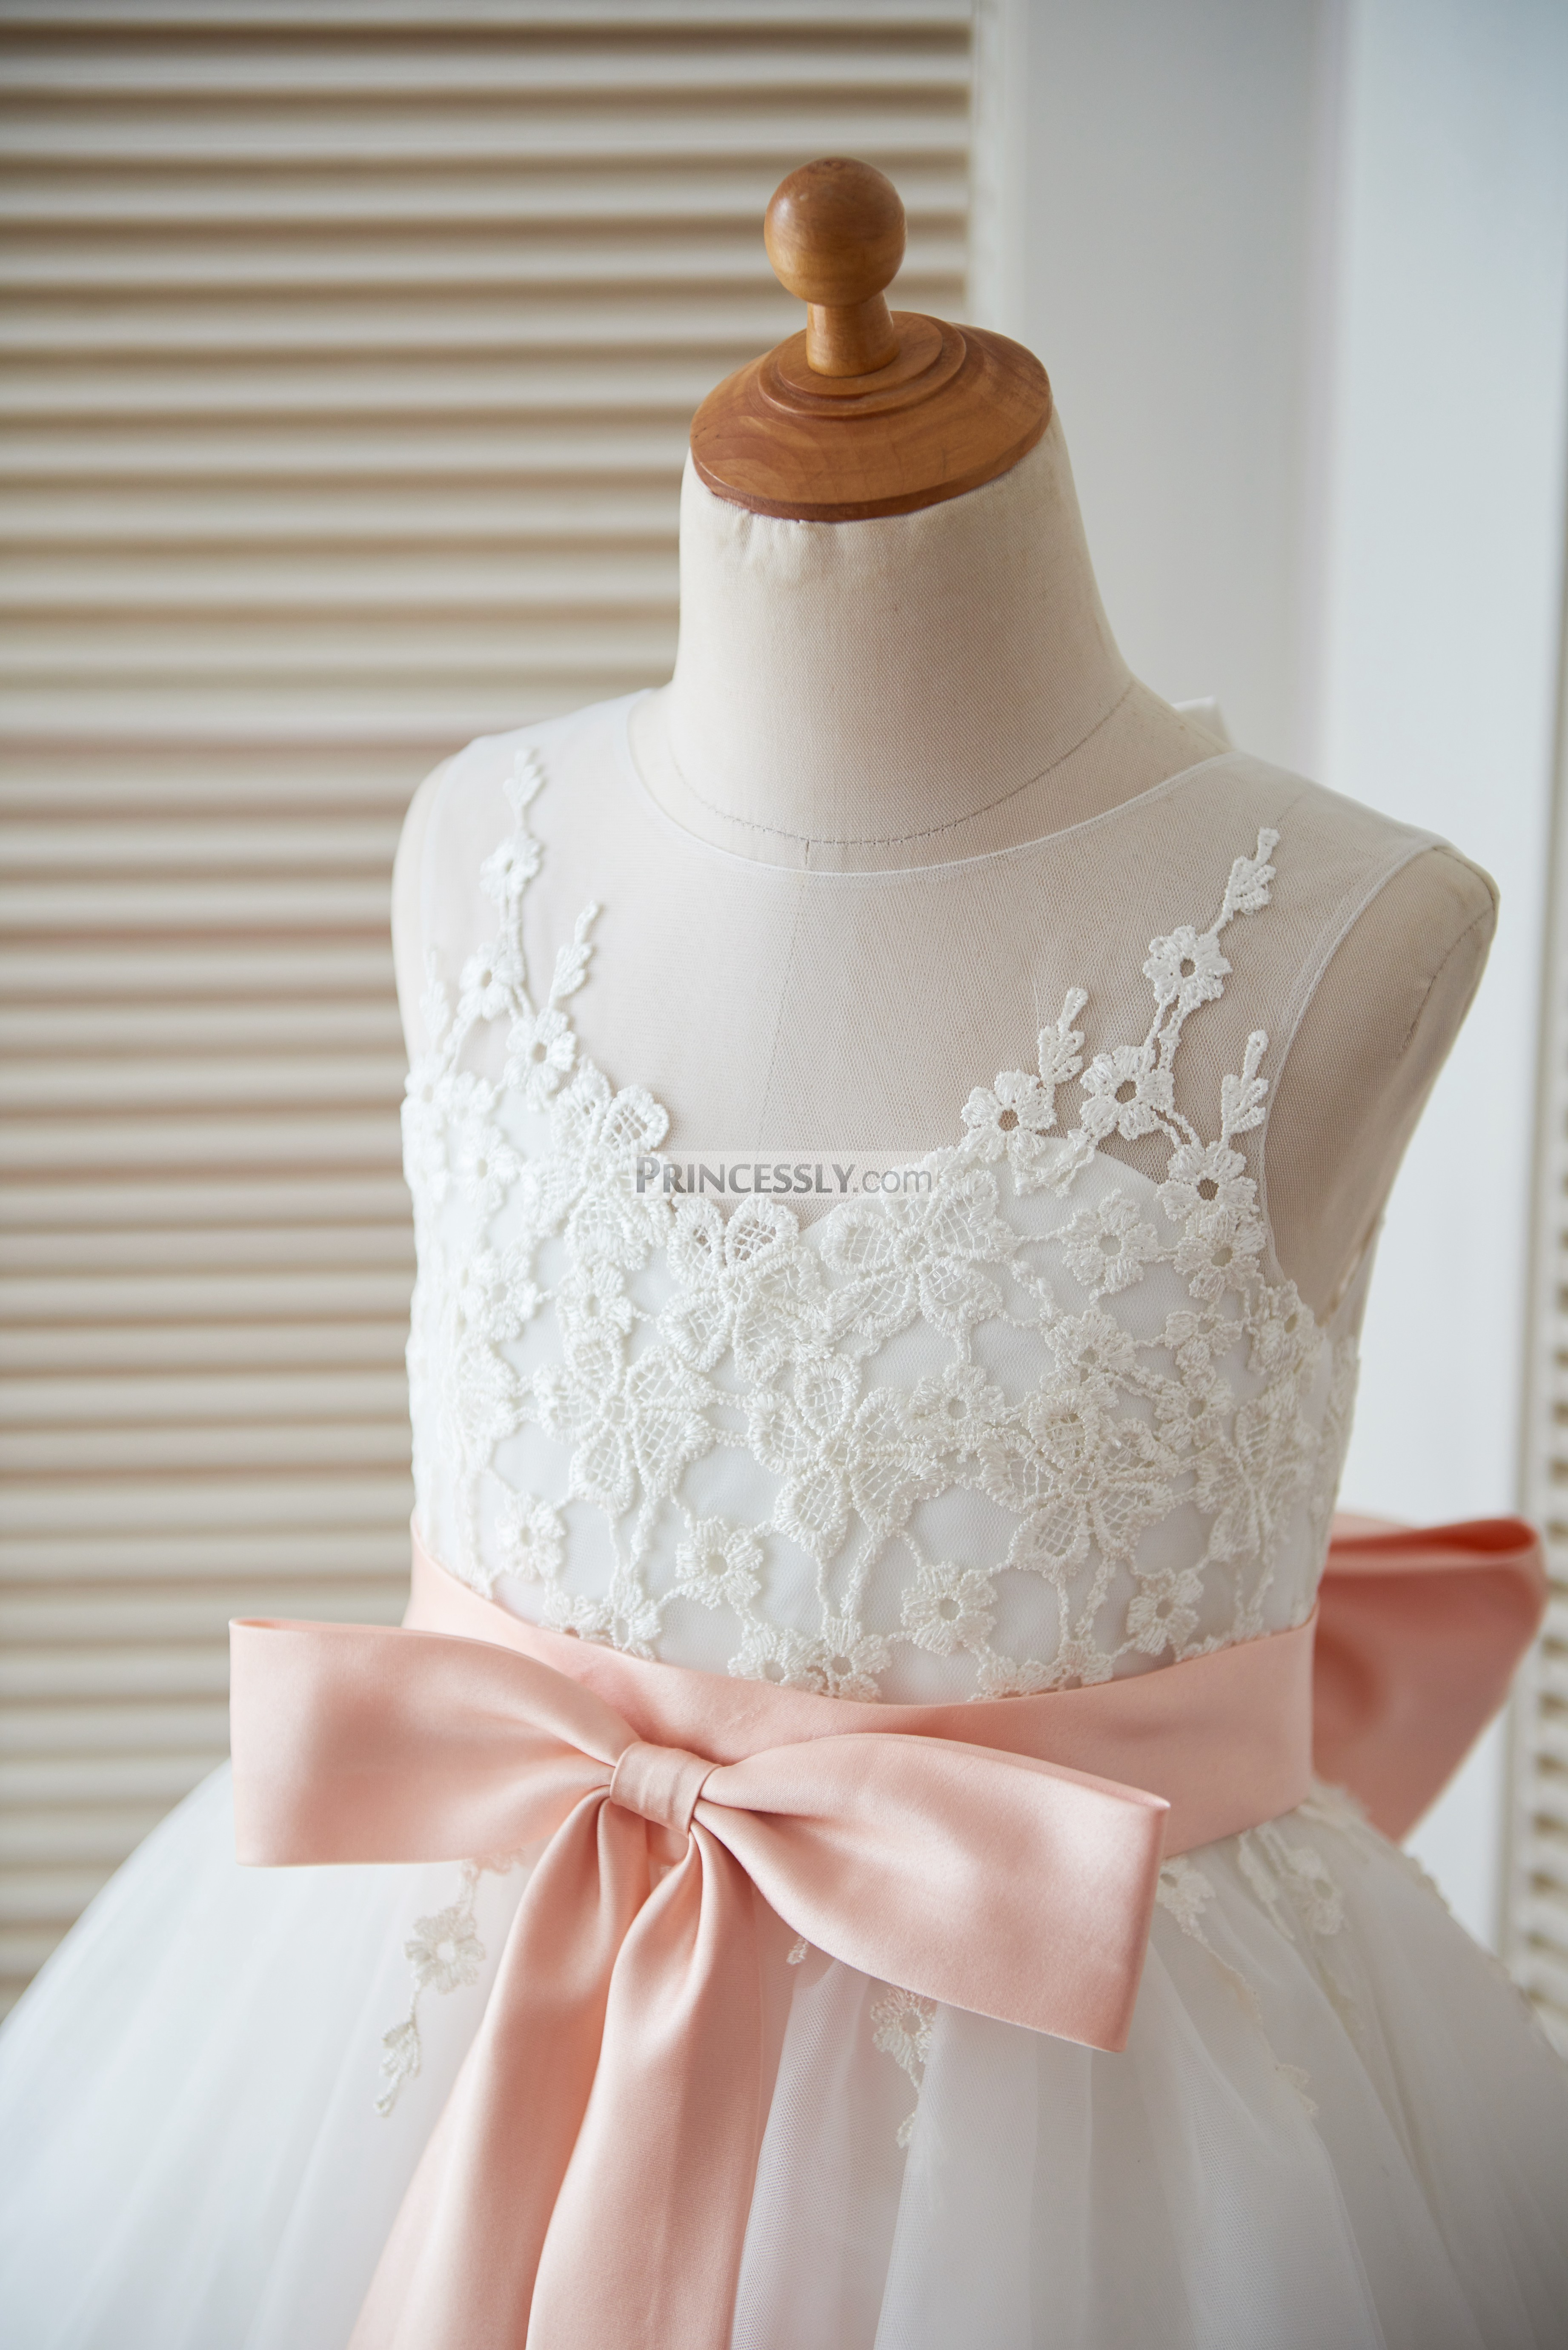 Ivory Lace Tulle Keyhole Back Flower Girl Dress With Blush Pink Bow Avivaly